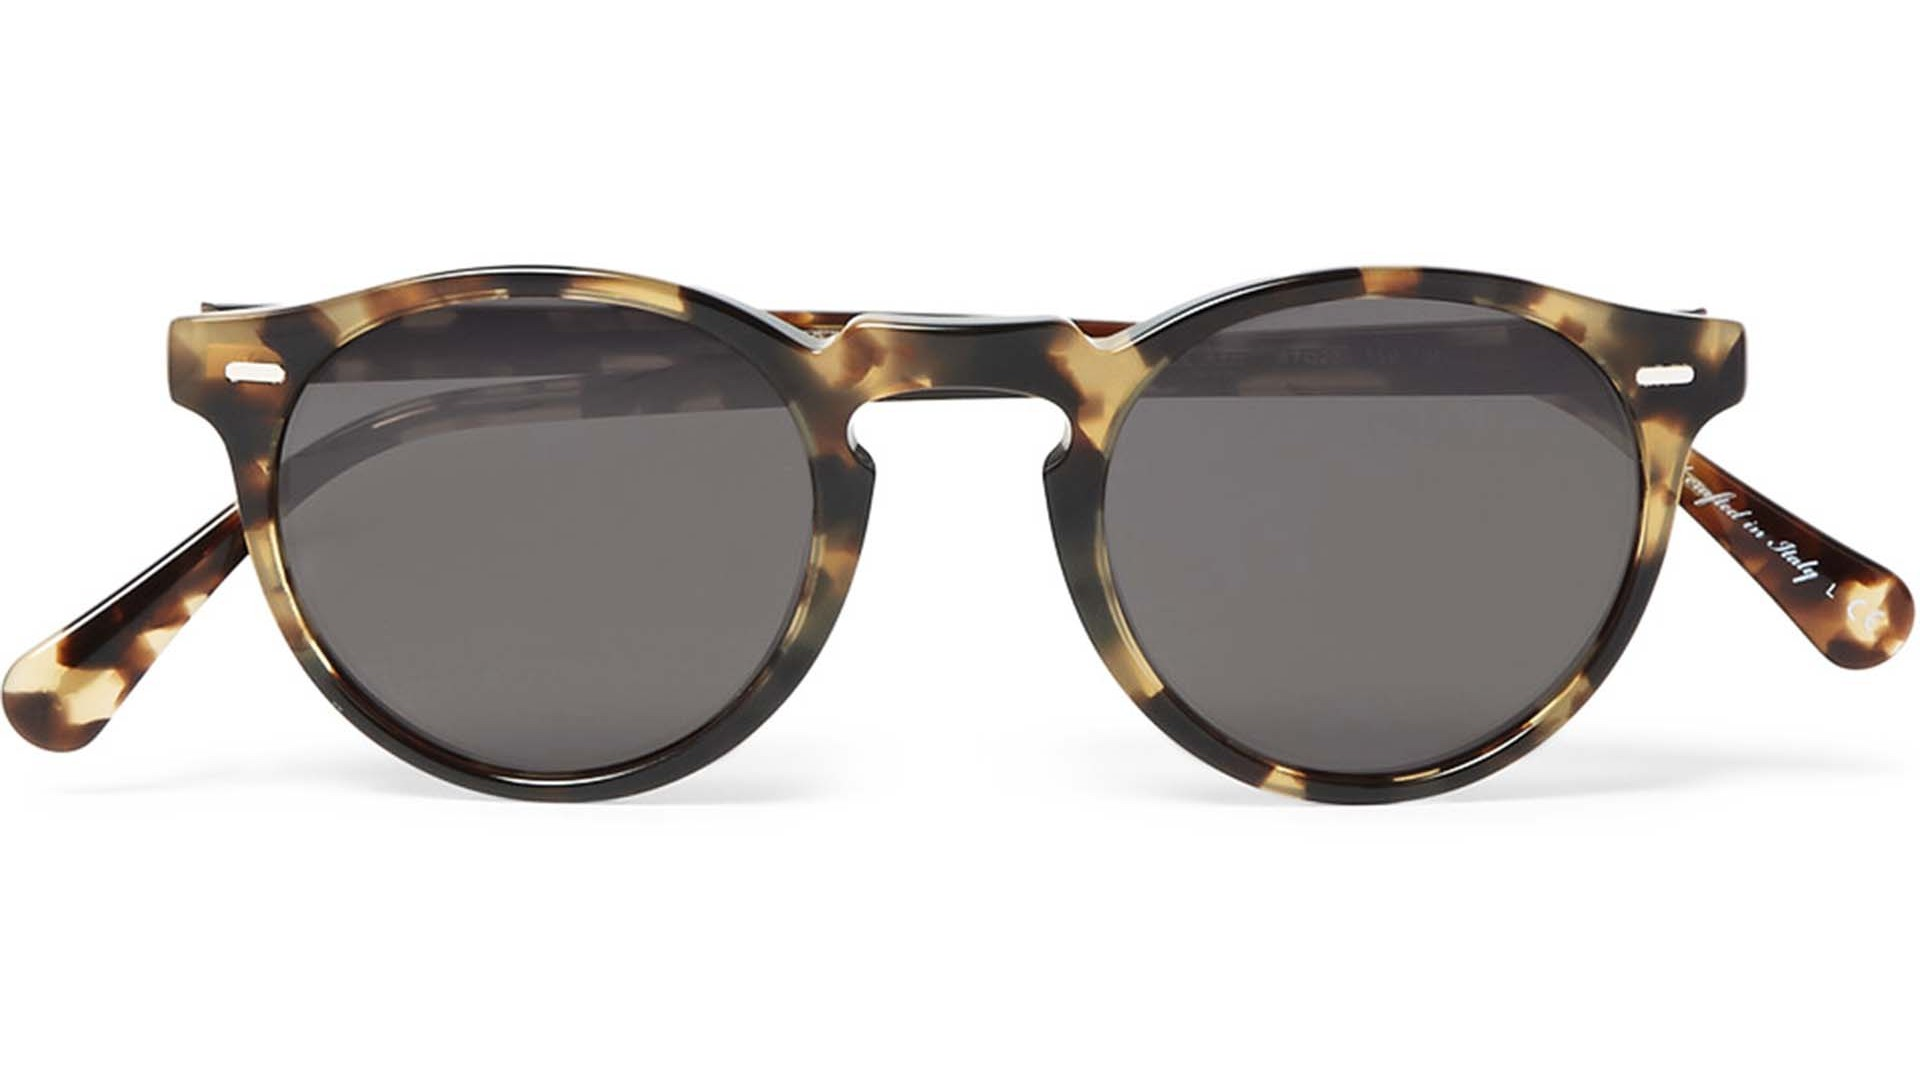 Oliver Peoples: Gregory Peck Round-Frame Tortoiseshell Acetate Sunglasses